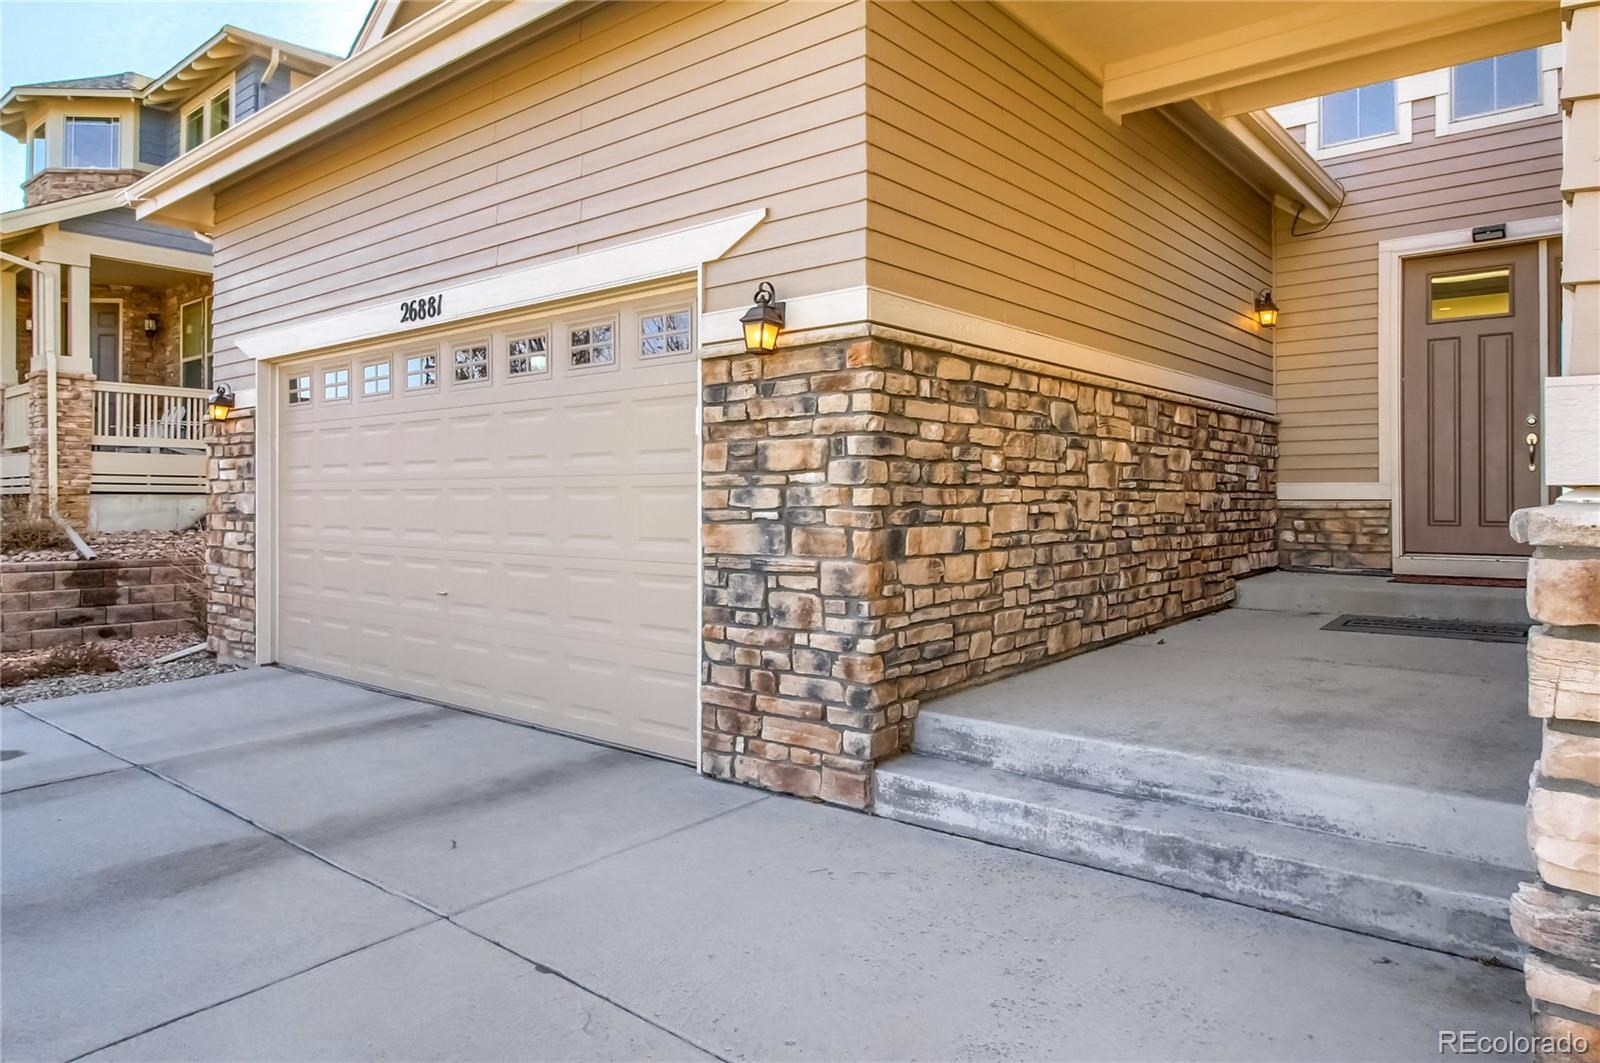 MLS# 7906413 - 26881 E Briarwood Circle, Aurora, CO 80016